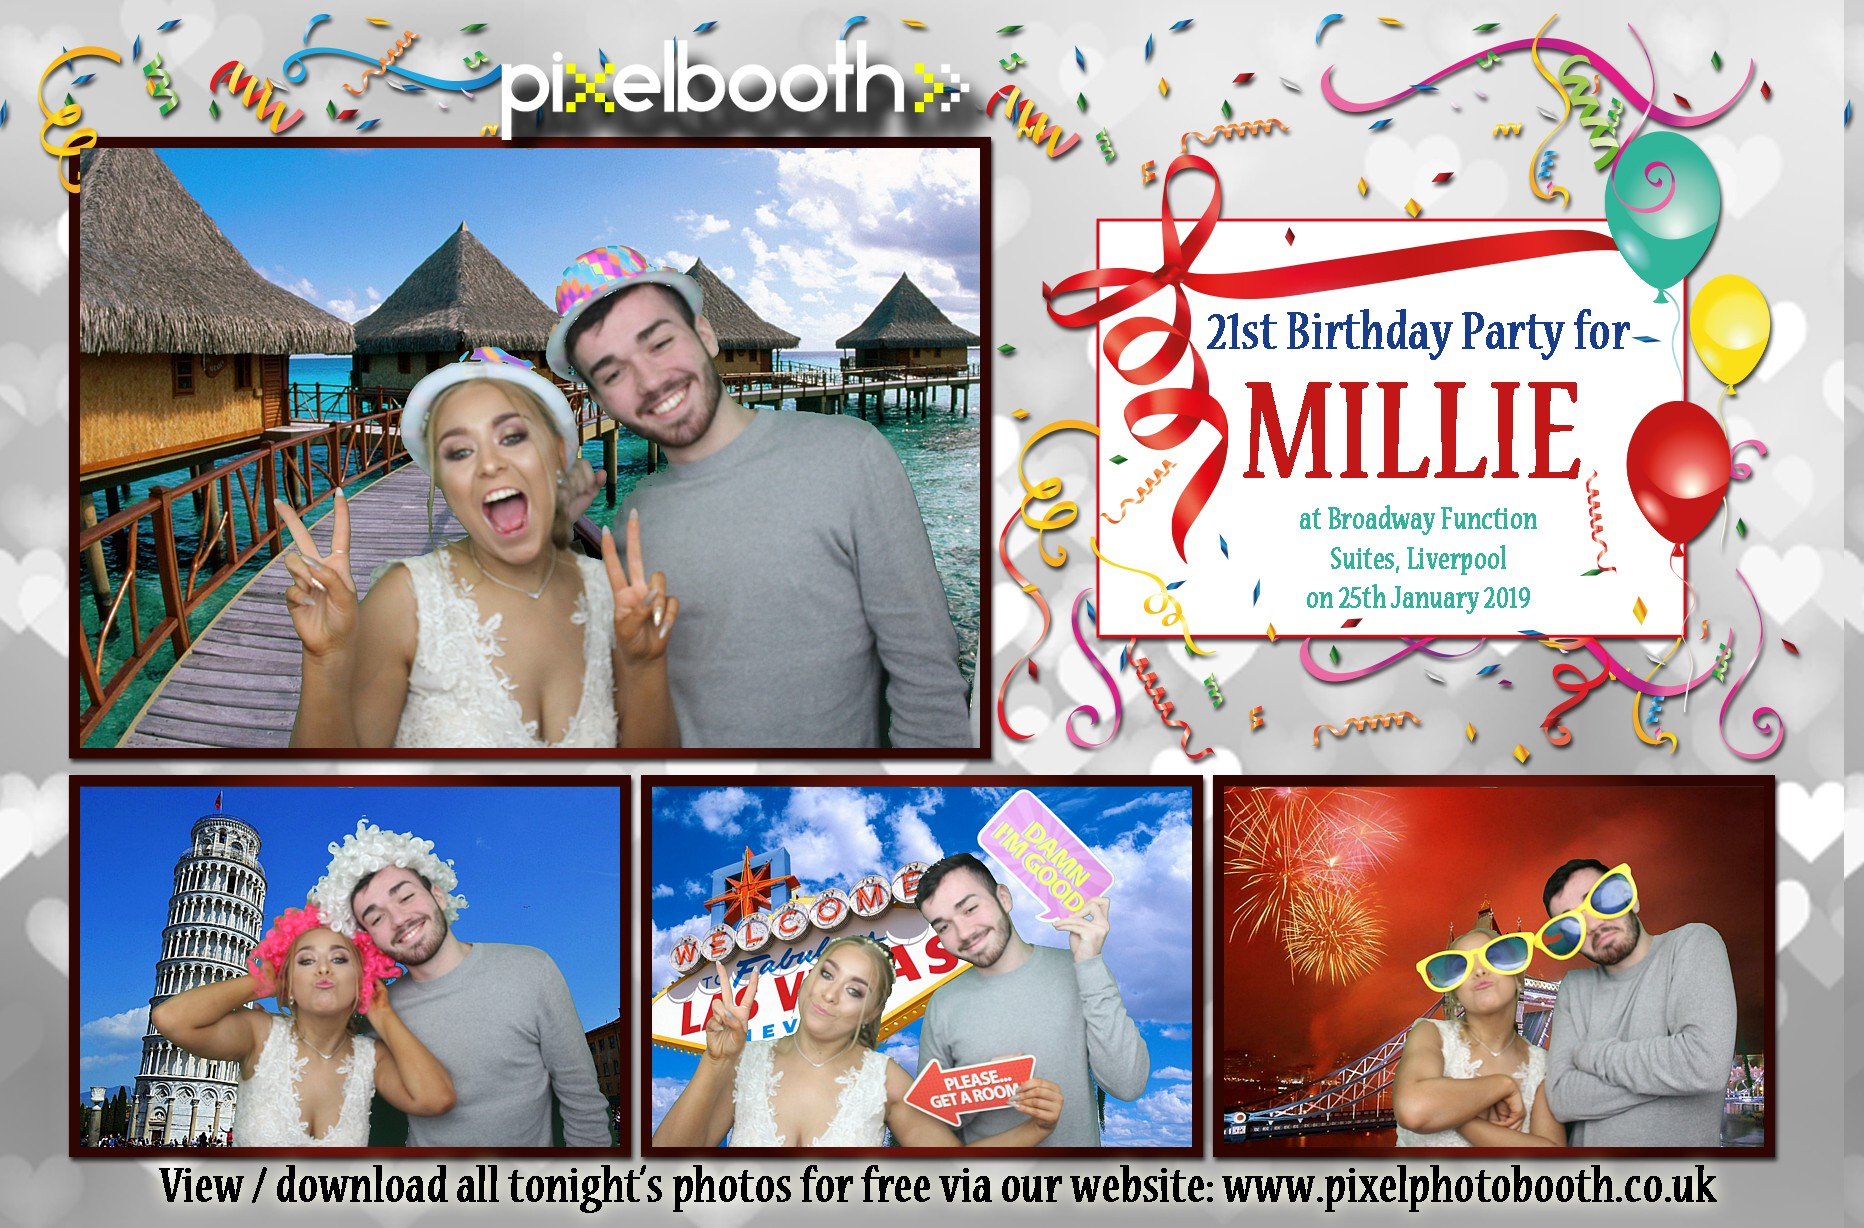 25th Jan 2019: 21st Birthday Party for Millie at Broadway Function Rooms